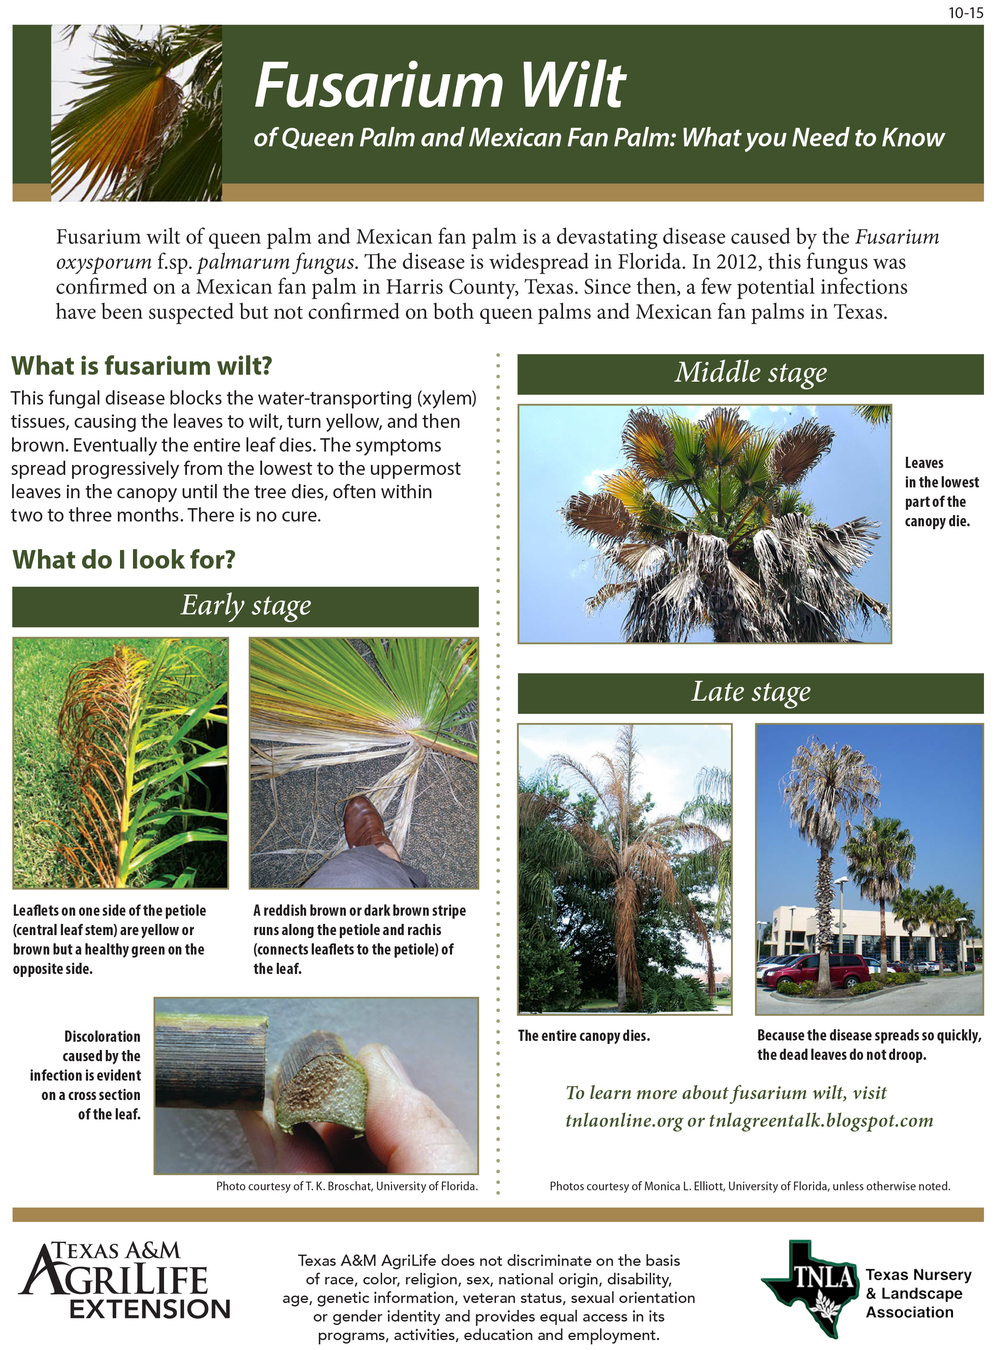 A Fusarium Wilt Fact Sheet by the Texas AgriLife Extension.